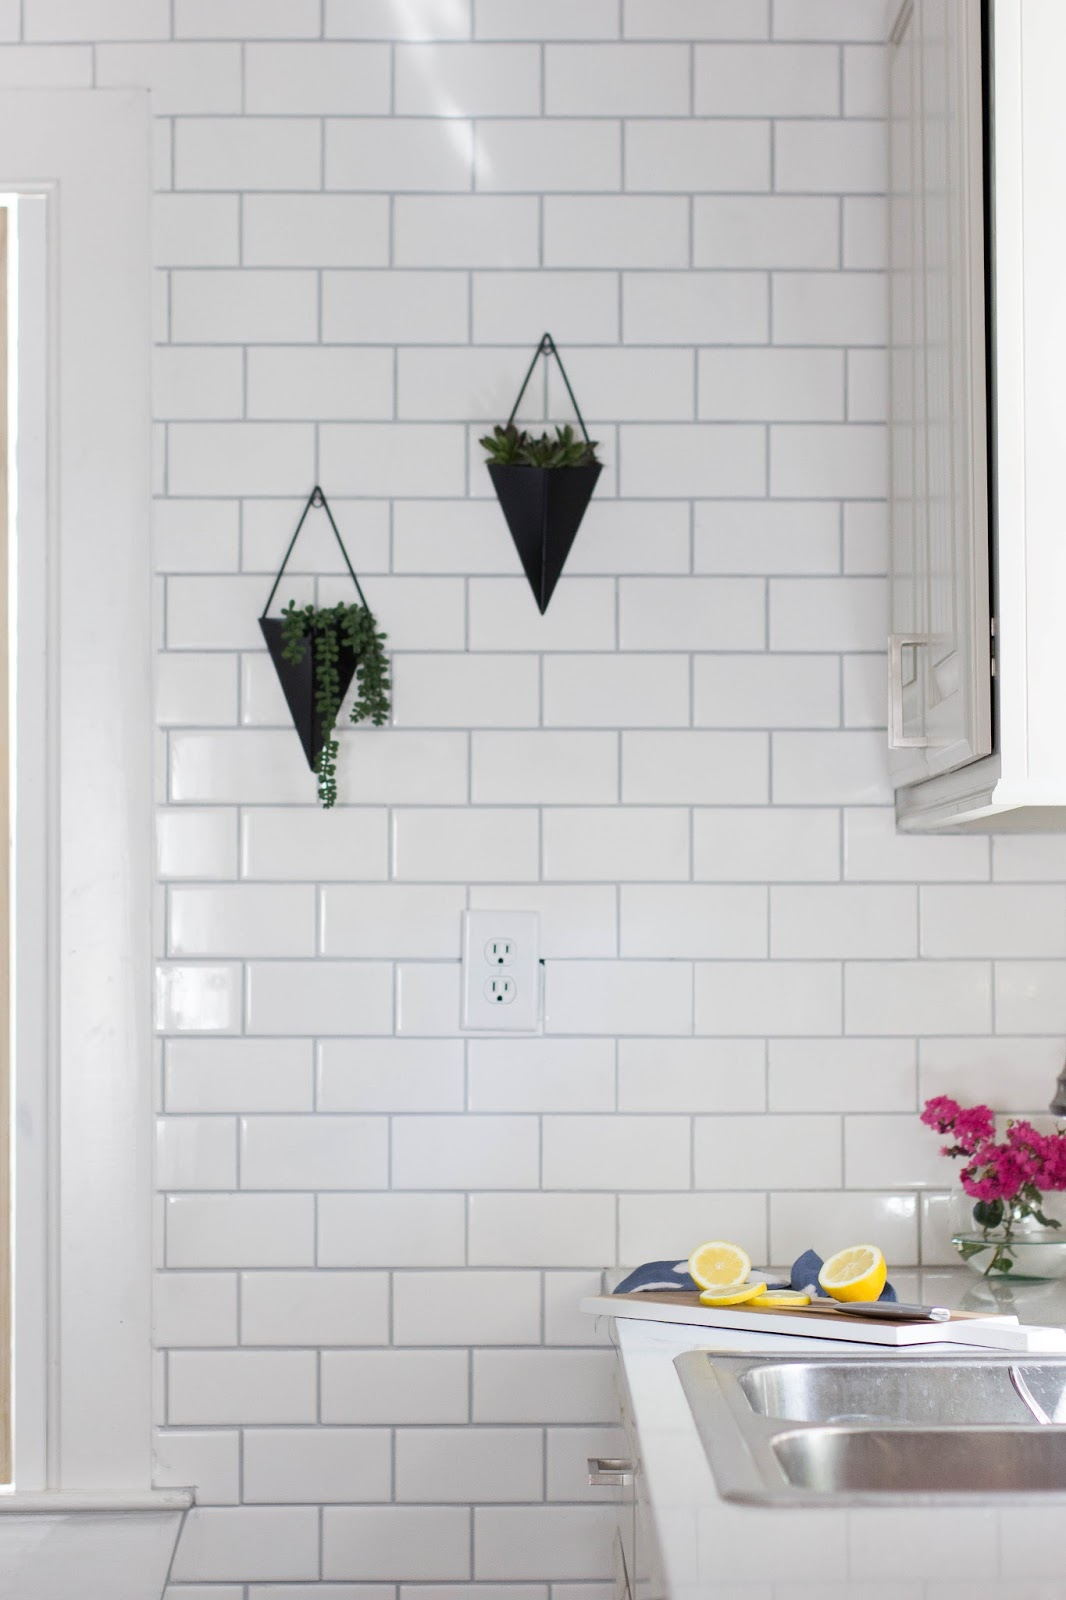 Always rooney before after floor to ceiling subway tile wall wall was perfect for it it ended up brightening up the kitchen and making our kitchen appear larger than it is you can see in the first photo how dailygadgetfo Choice Image